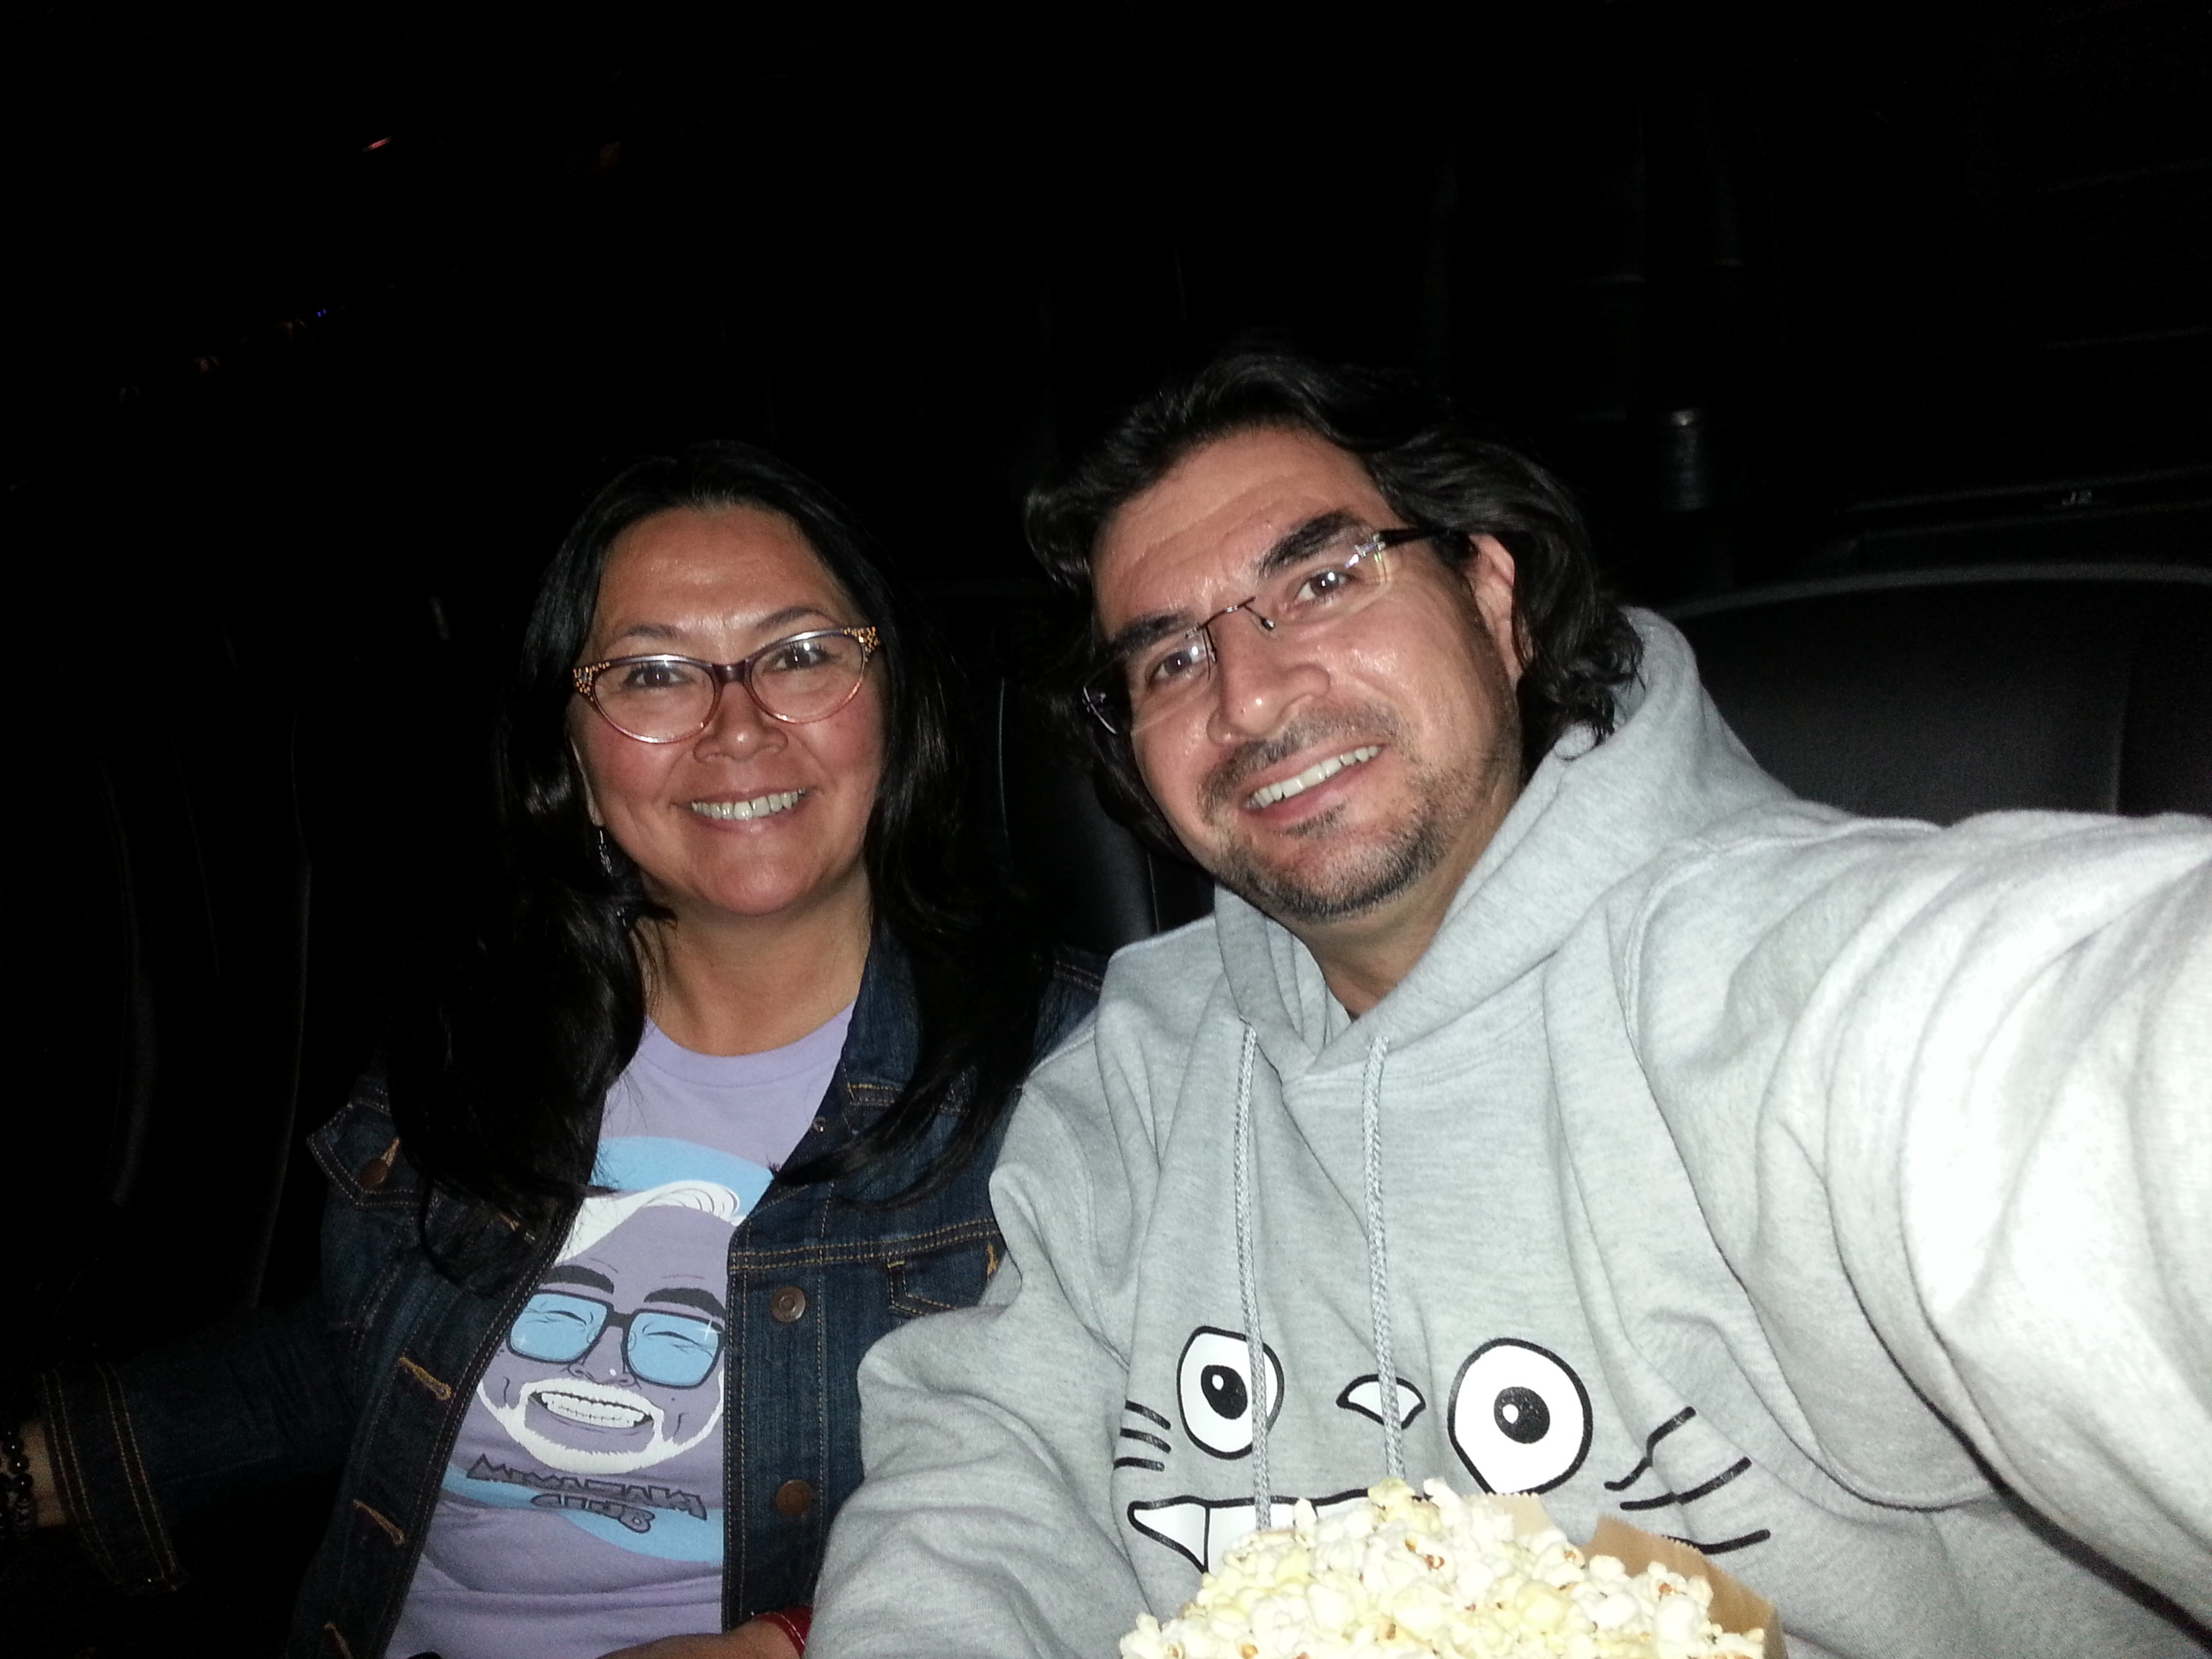 At the movies, From Up on Poppy Hill